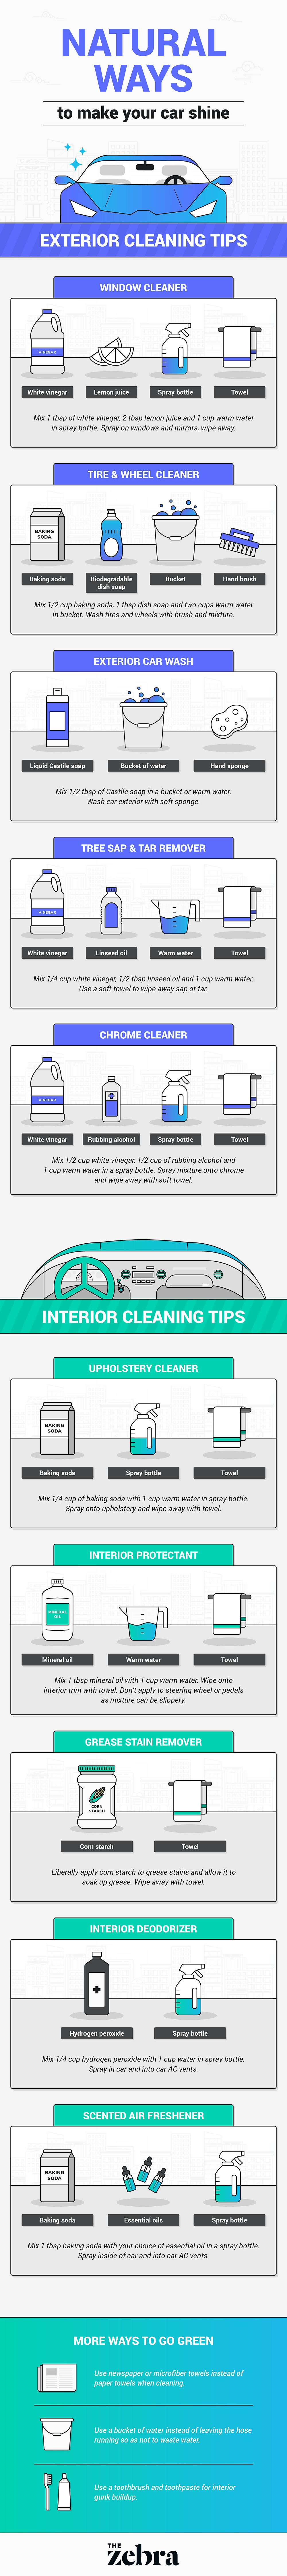 Green Cleaning Your Car Infographic from The Ze